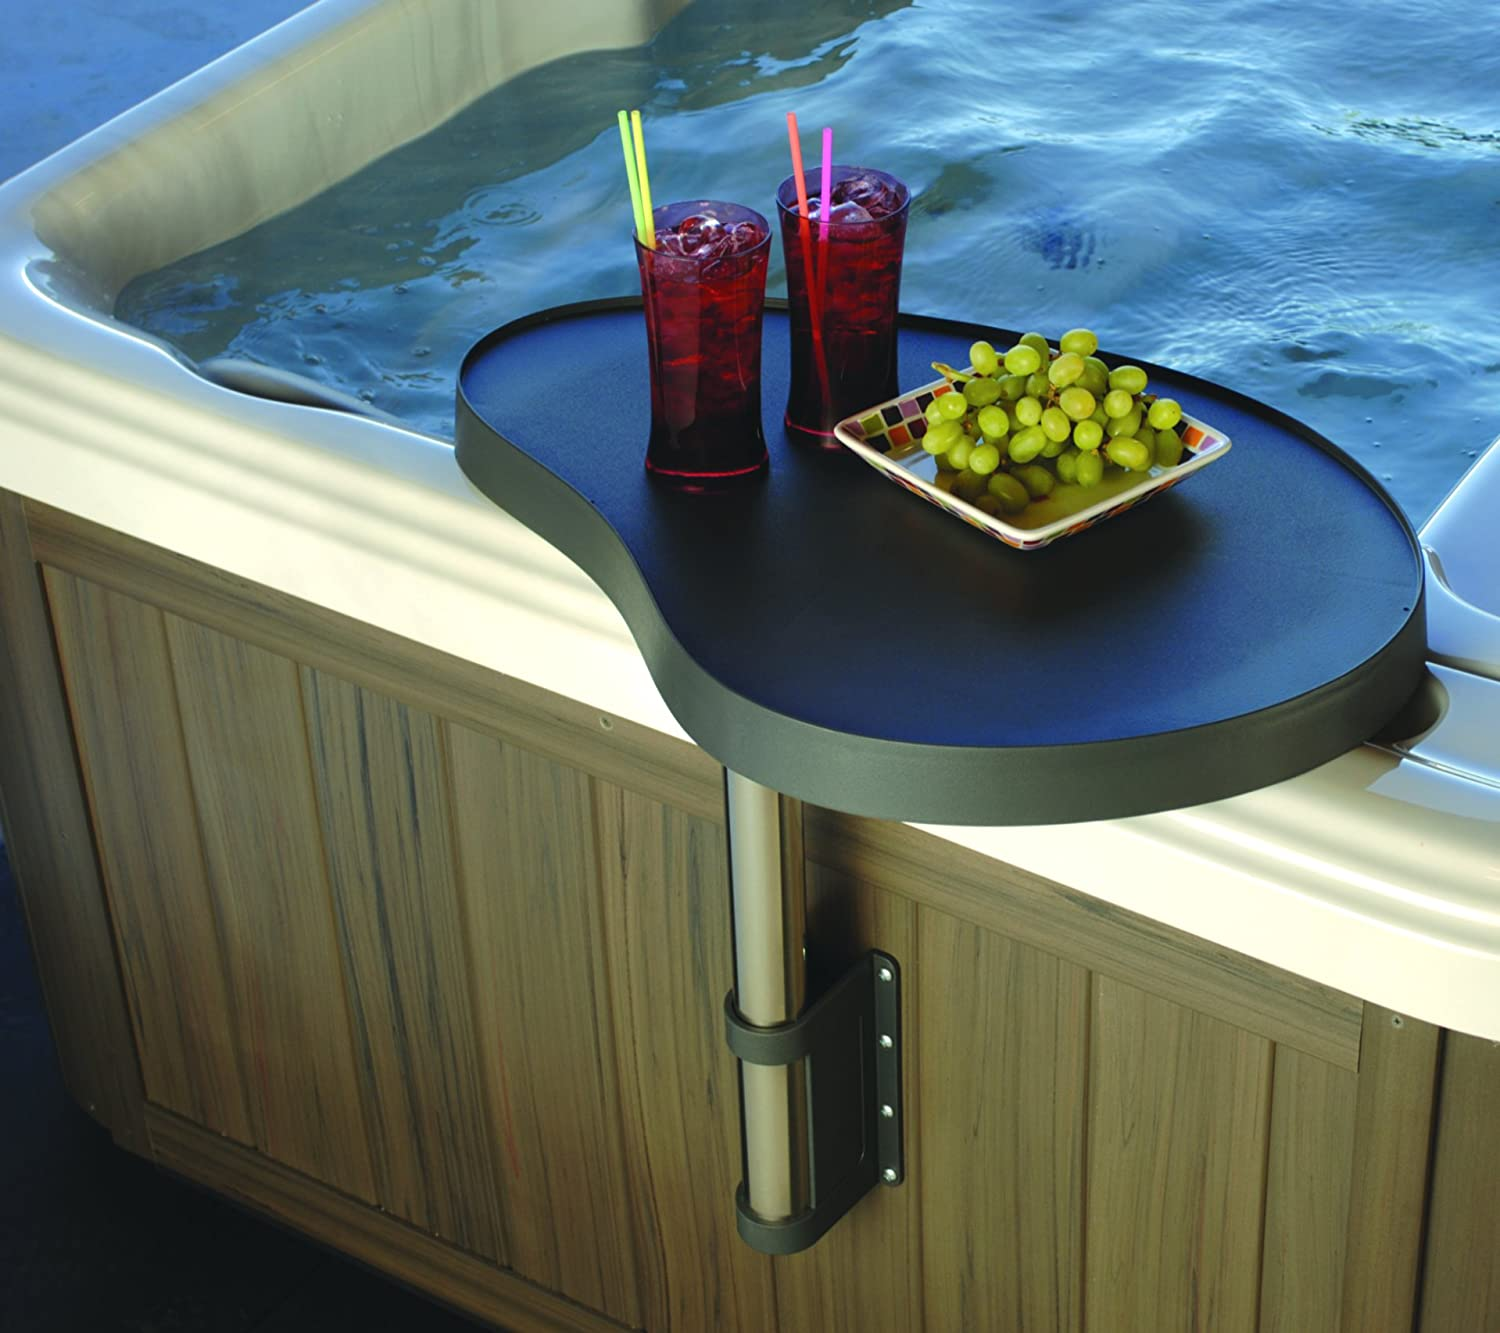 Essentials Hot Tub And Spa Caddy Swivel Spa Tray for Food and